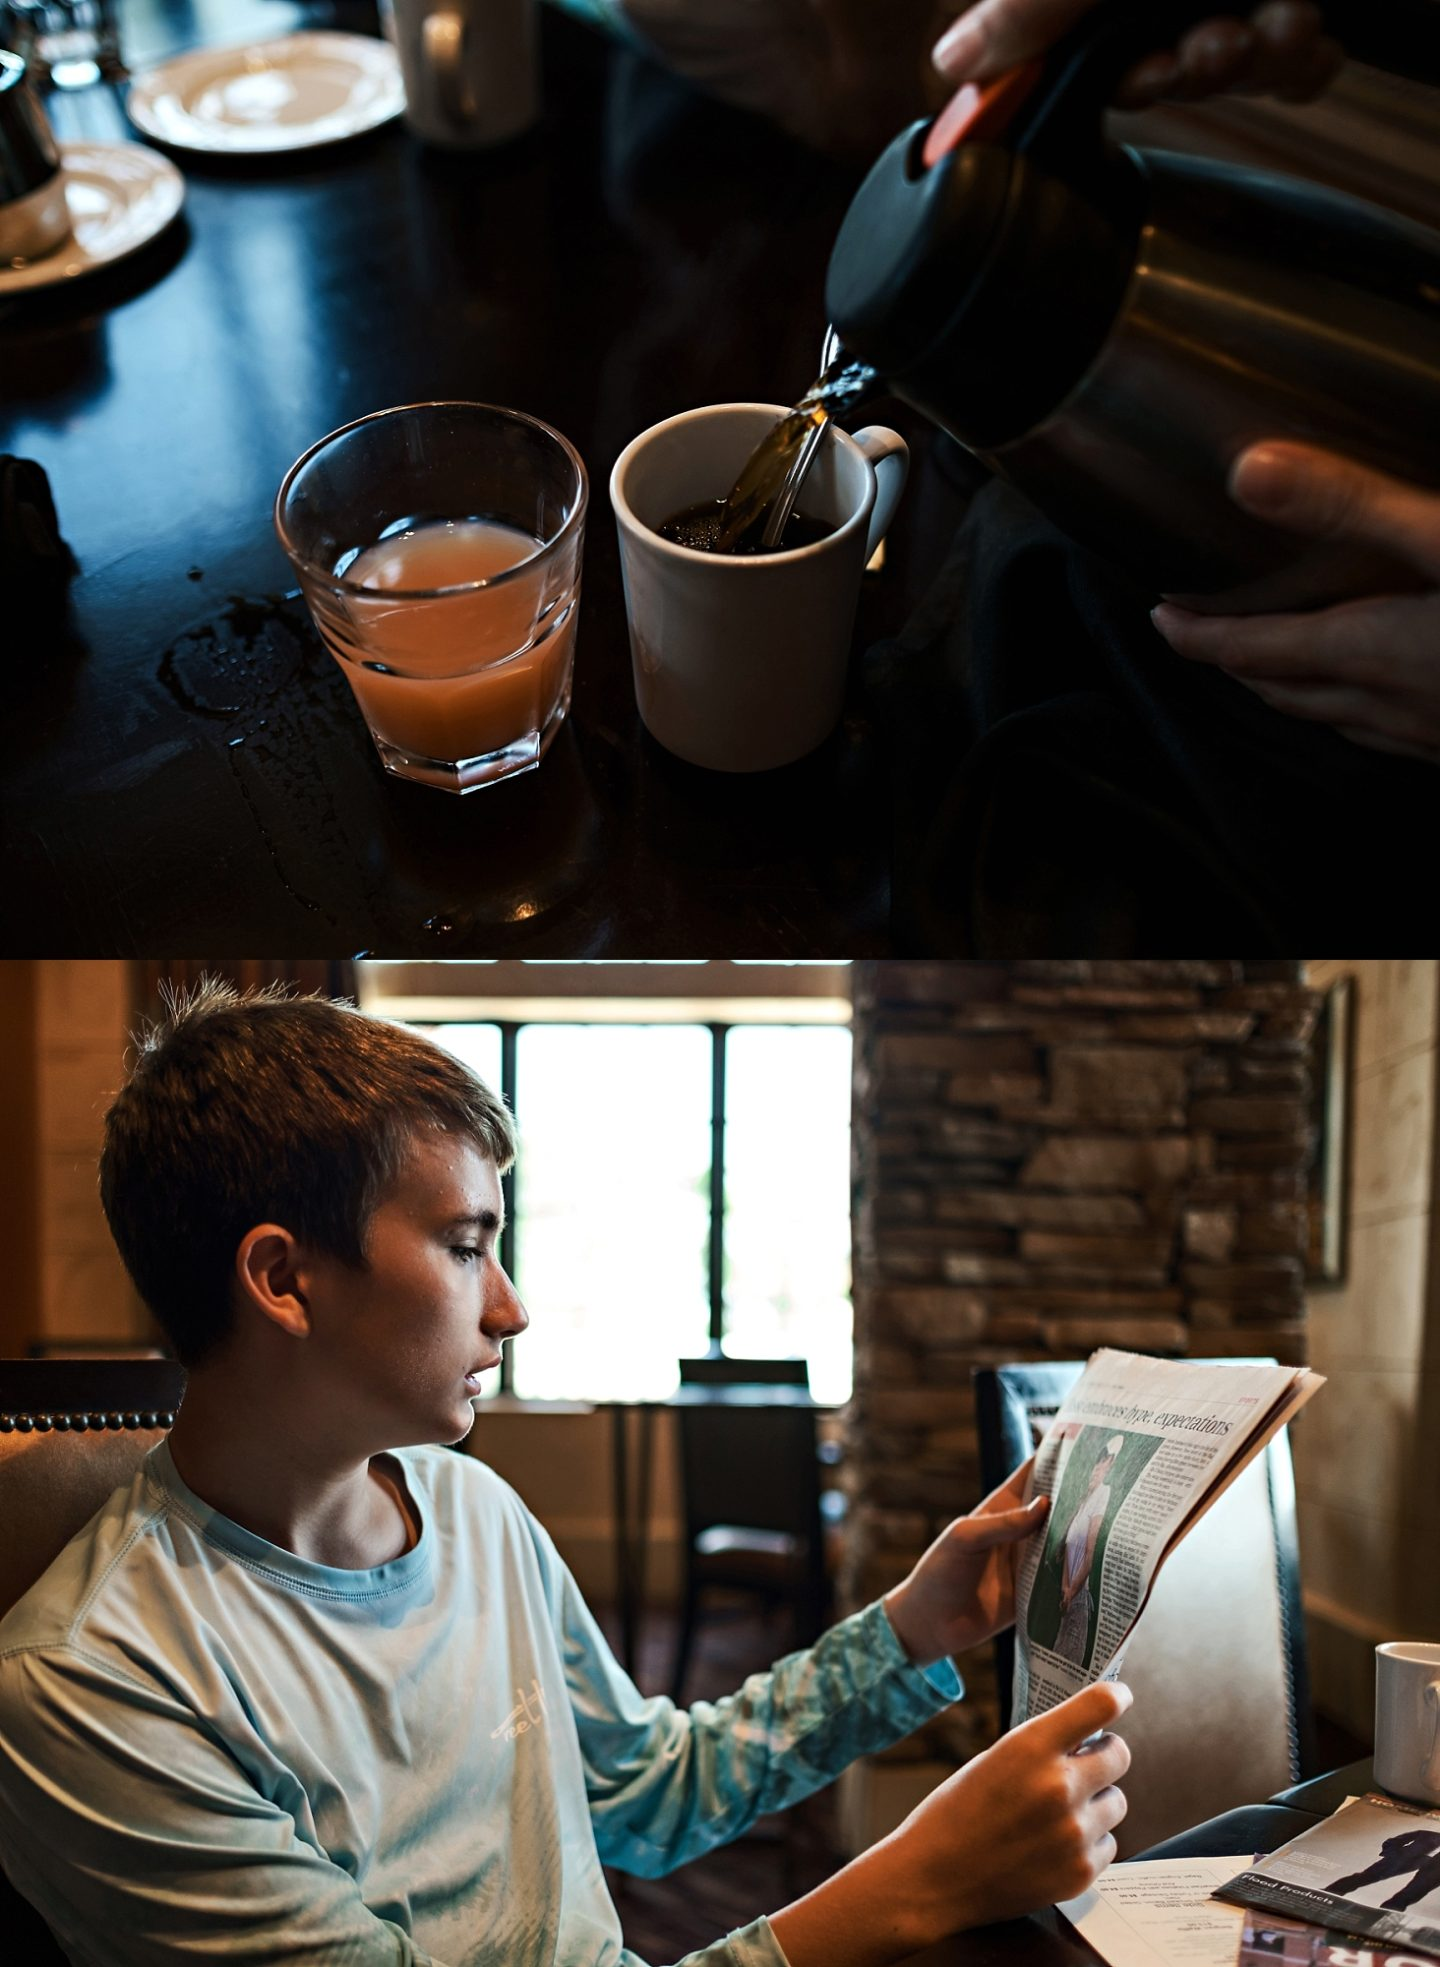 Reunion Resort by popular Atlanta travel blog, Chelissima: image of coffee being poured at Reunion Resort and a boy reading a newspaper.